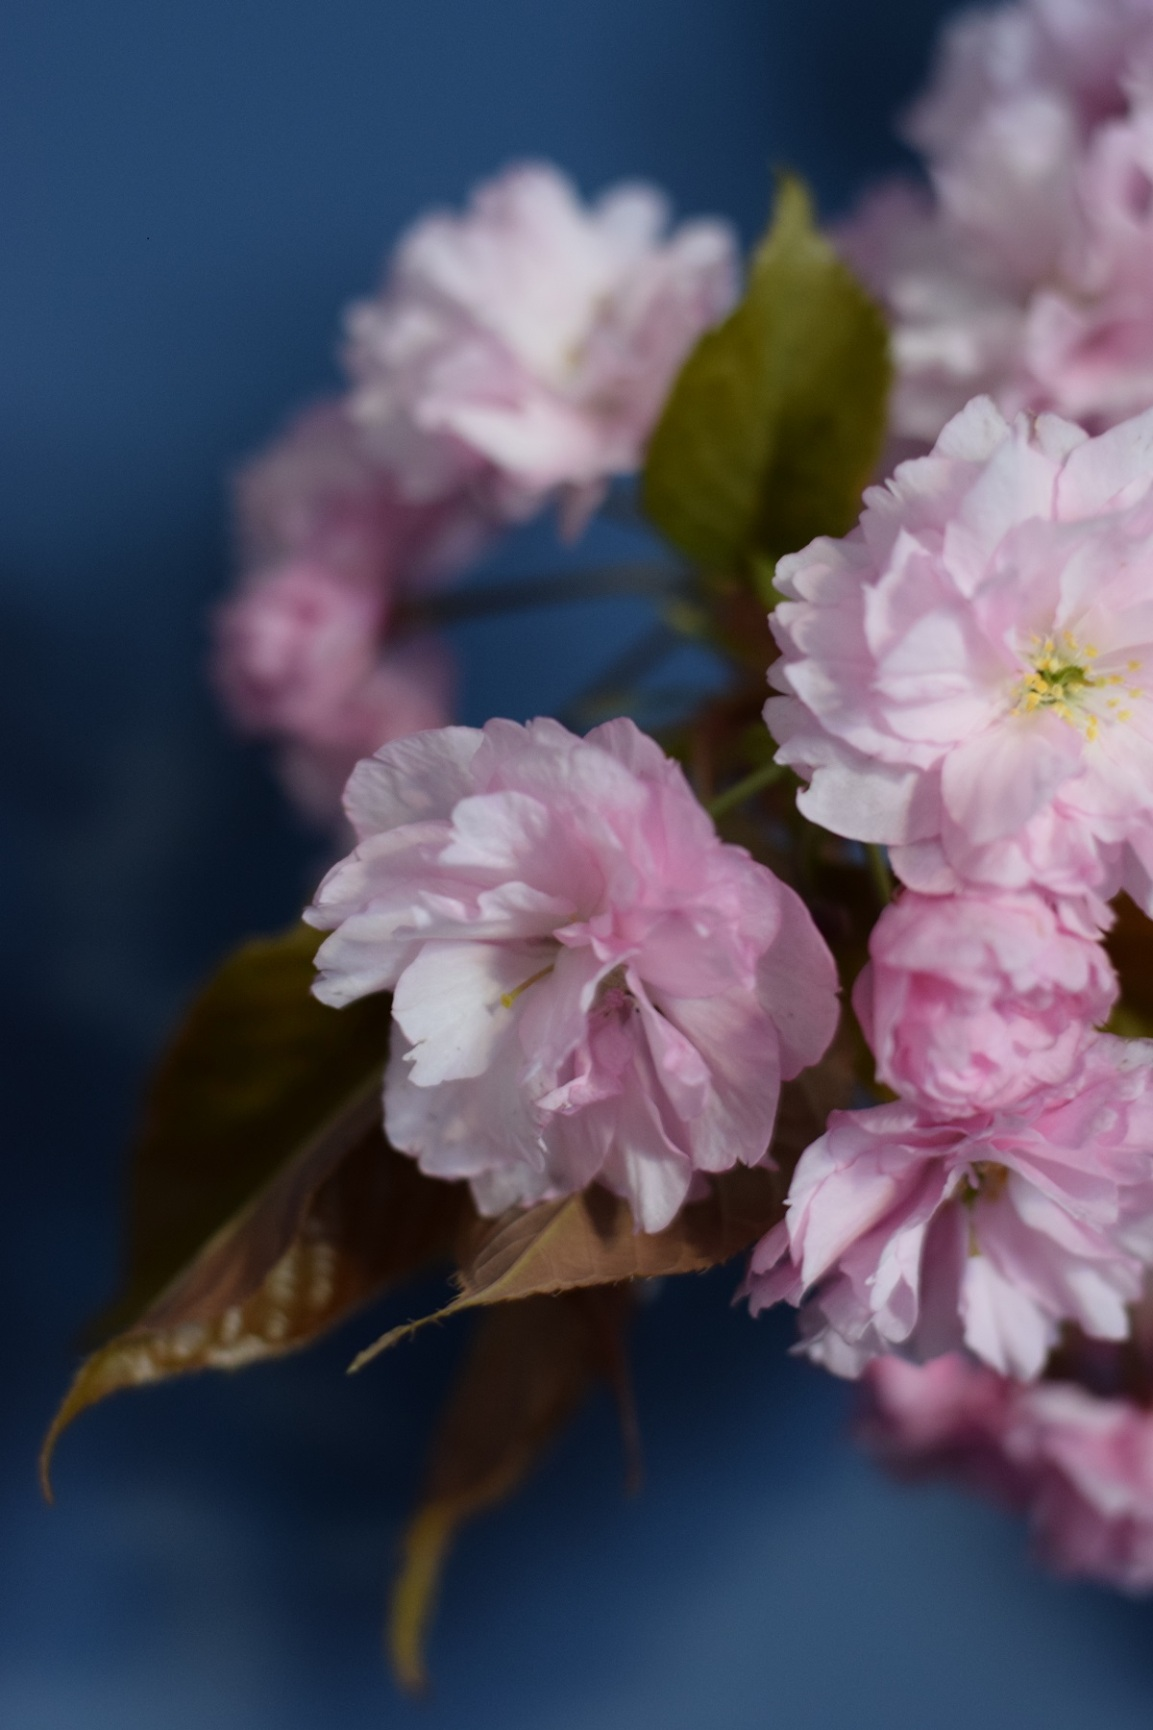 Cherry blossom with blue background